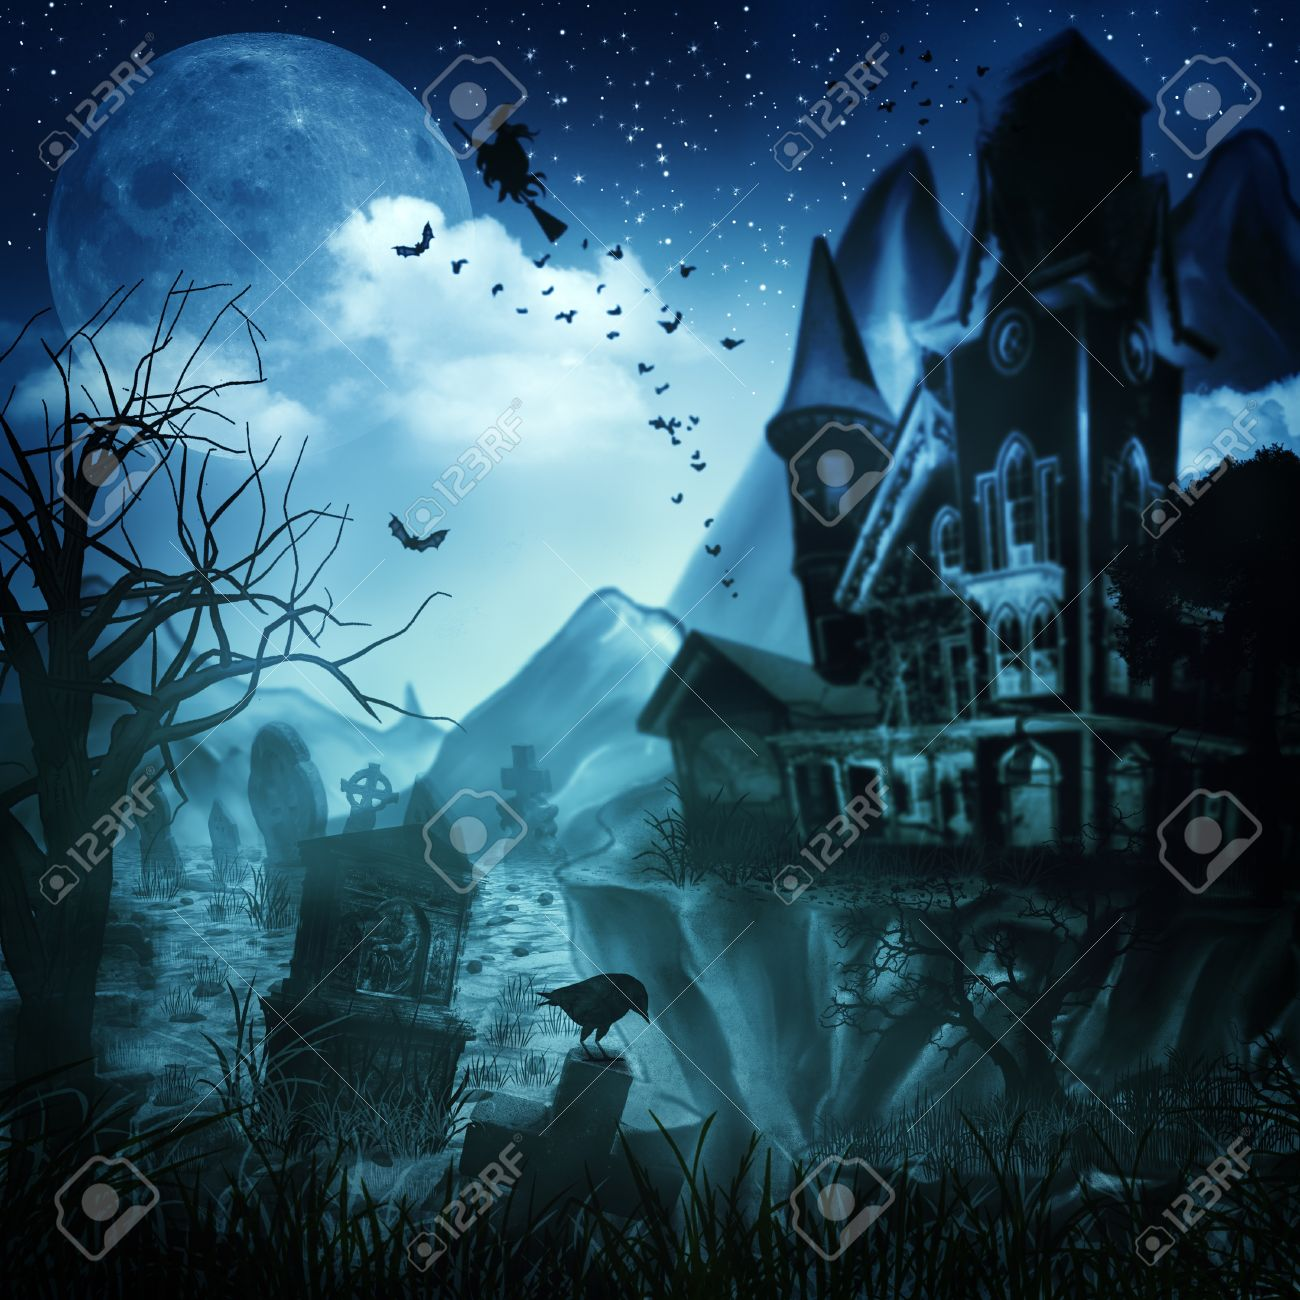 Abstract Halloween backgrounds for your design Stock Photo - 15071207